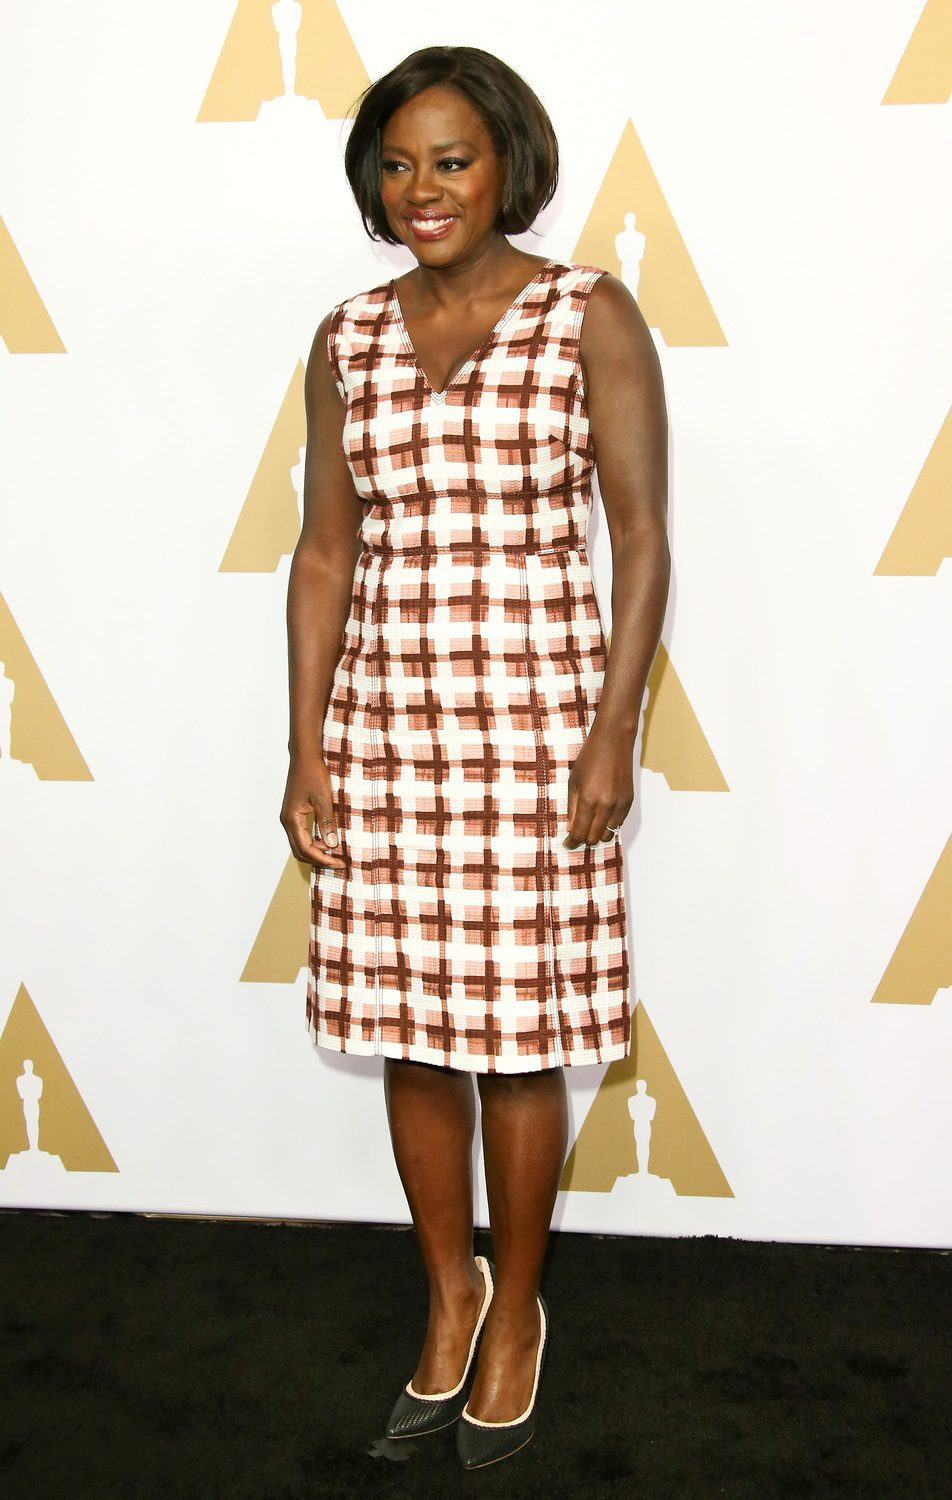 Viola Davis at the 2017 Annual Academy Awards Nominee Luncheon